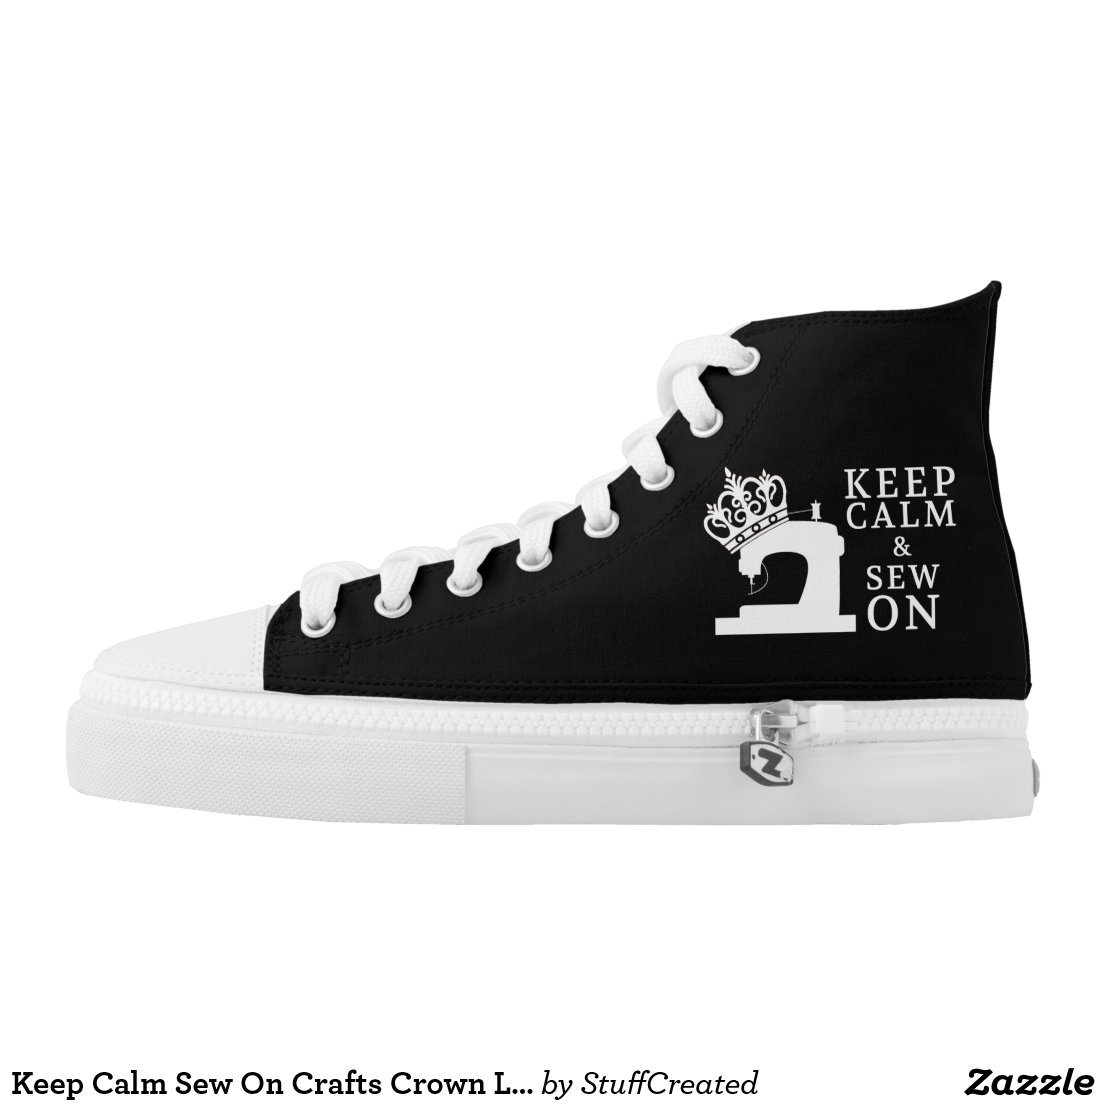 Keep calm & sew on hightop shoes